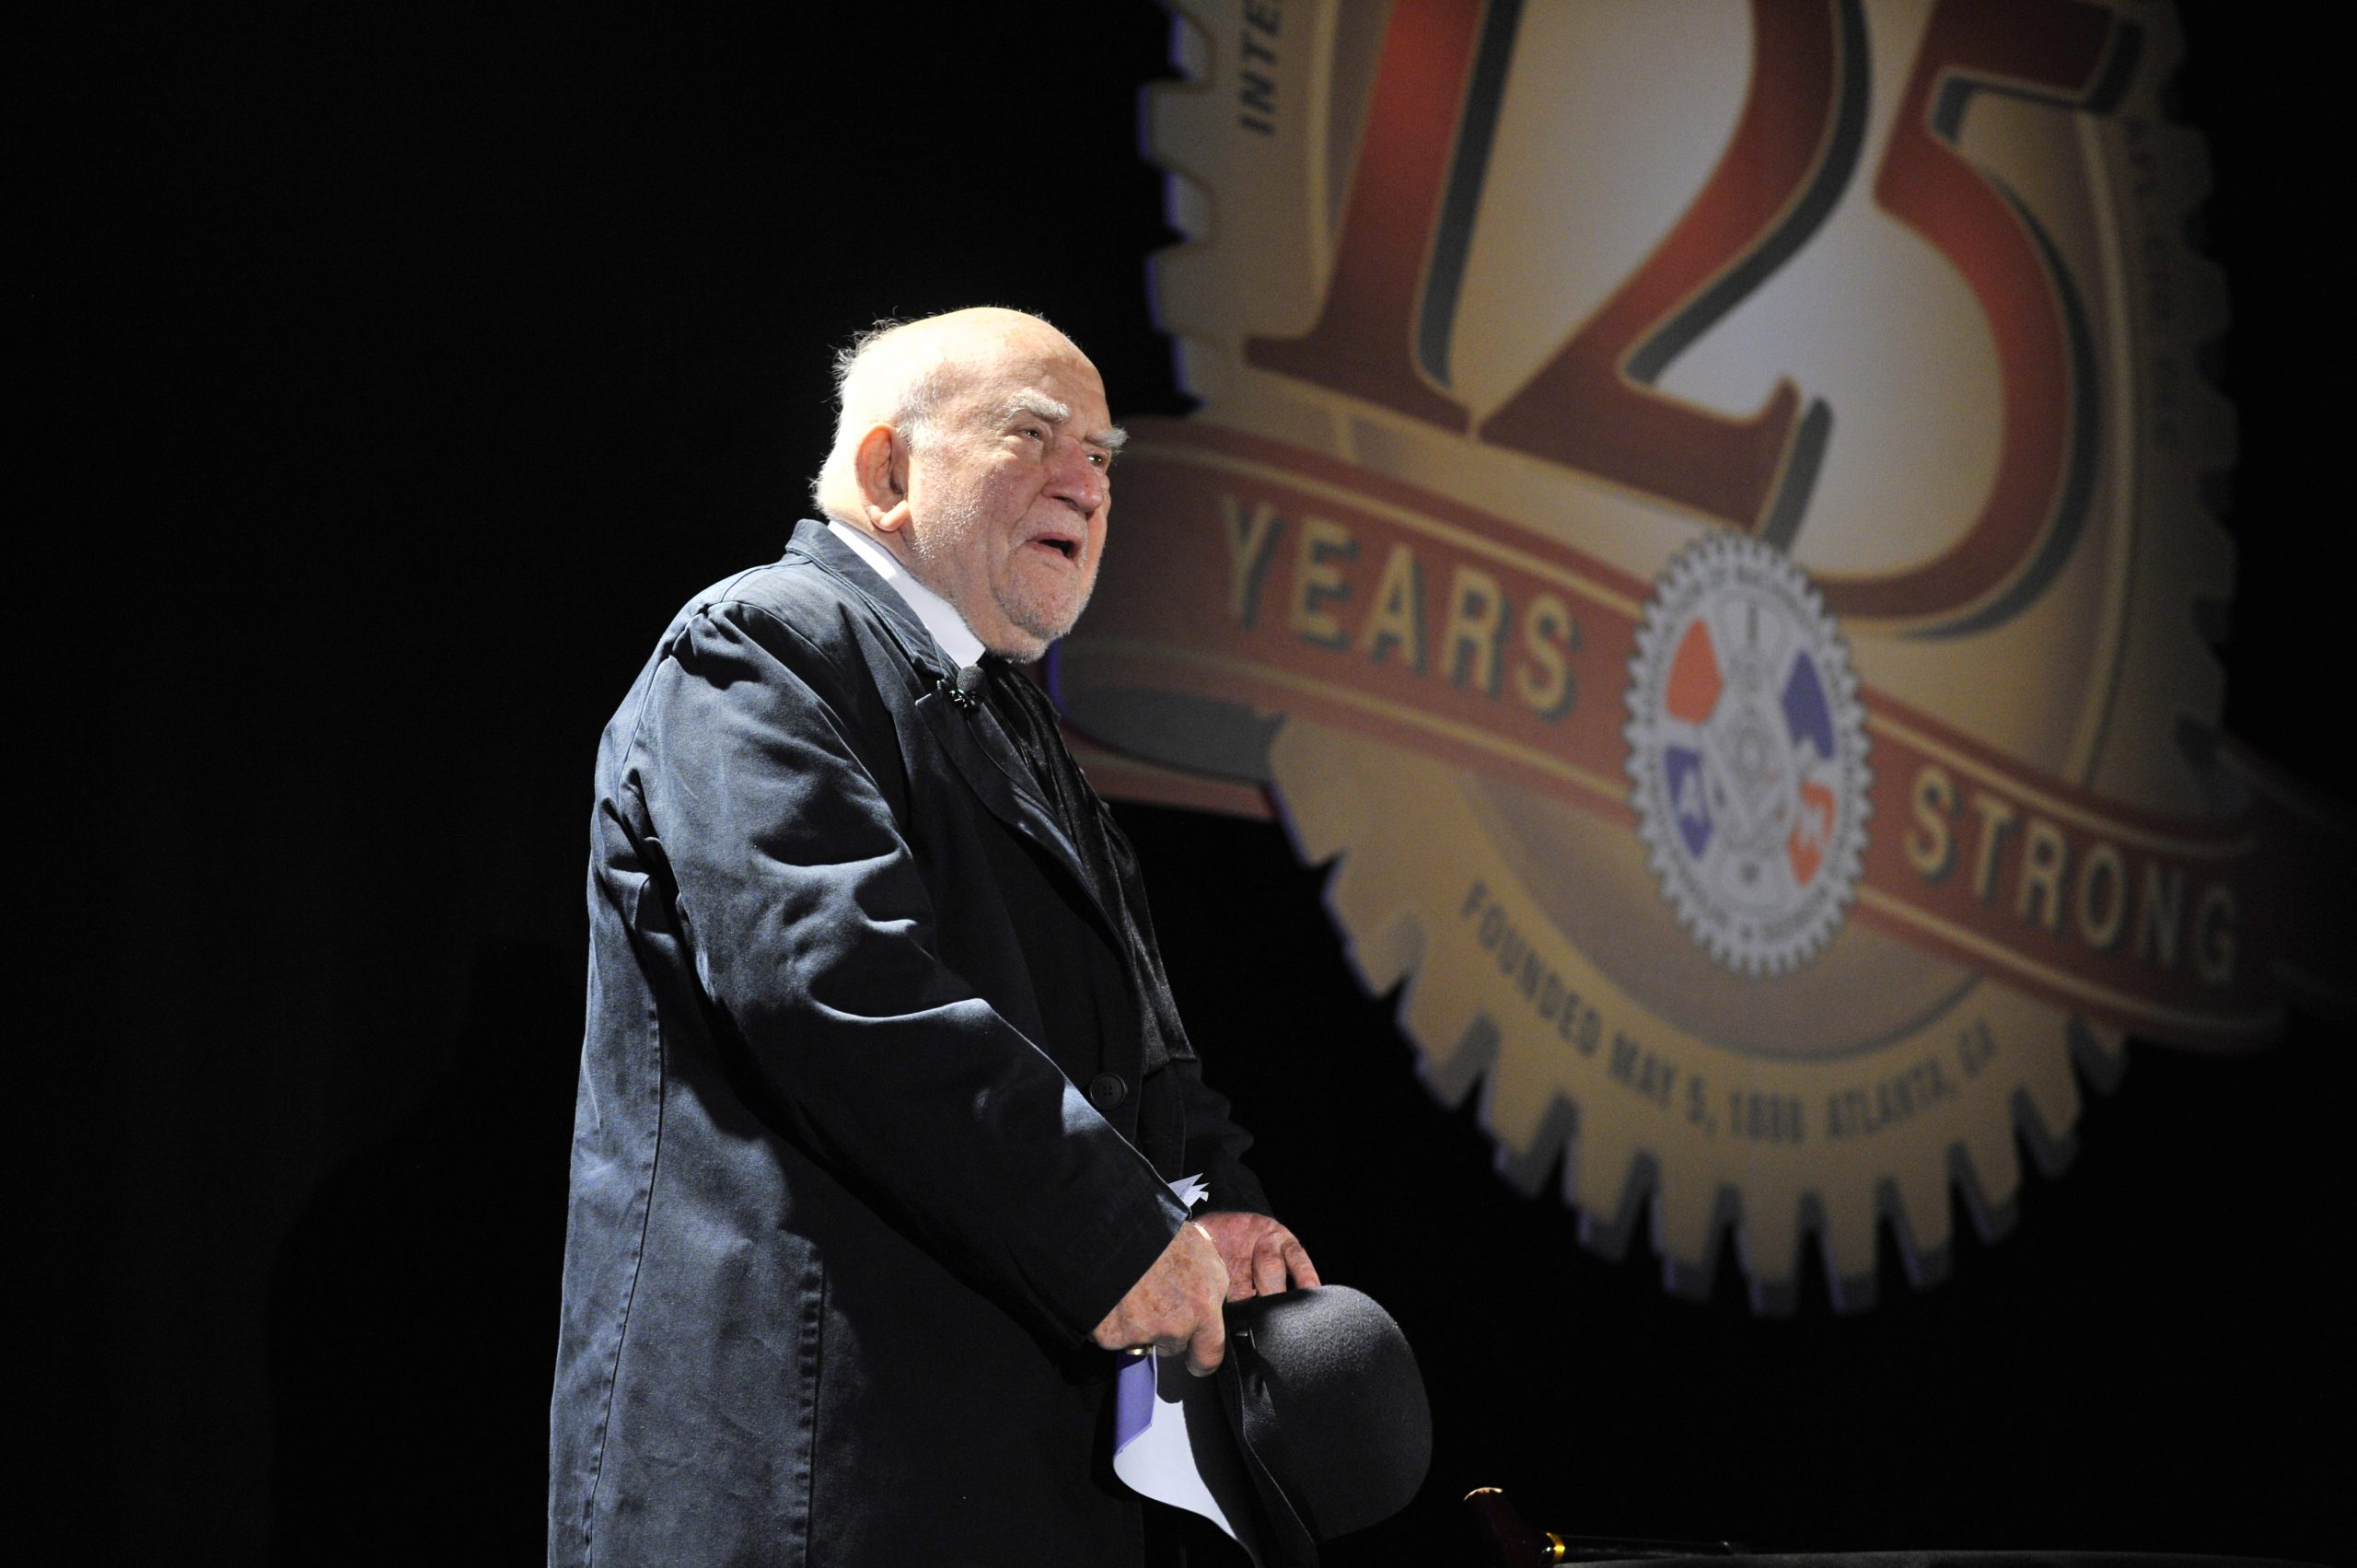 Machinists Union Mourns Loss of Honorary IAM Member, Friend of Labor Ed Asner